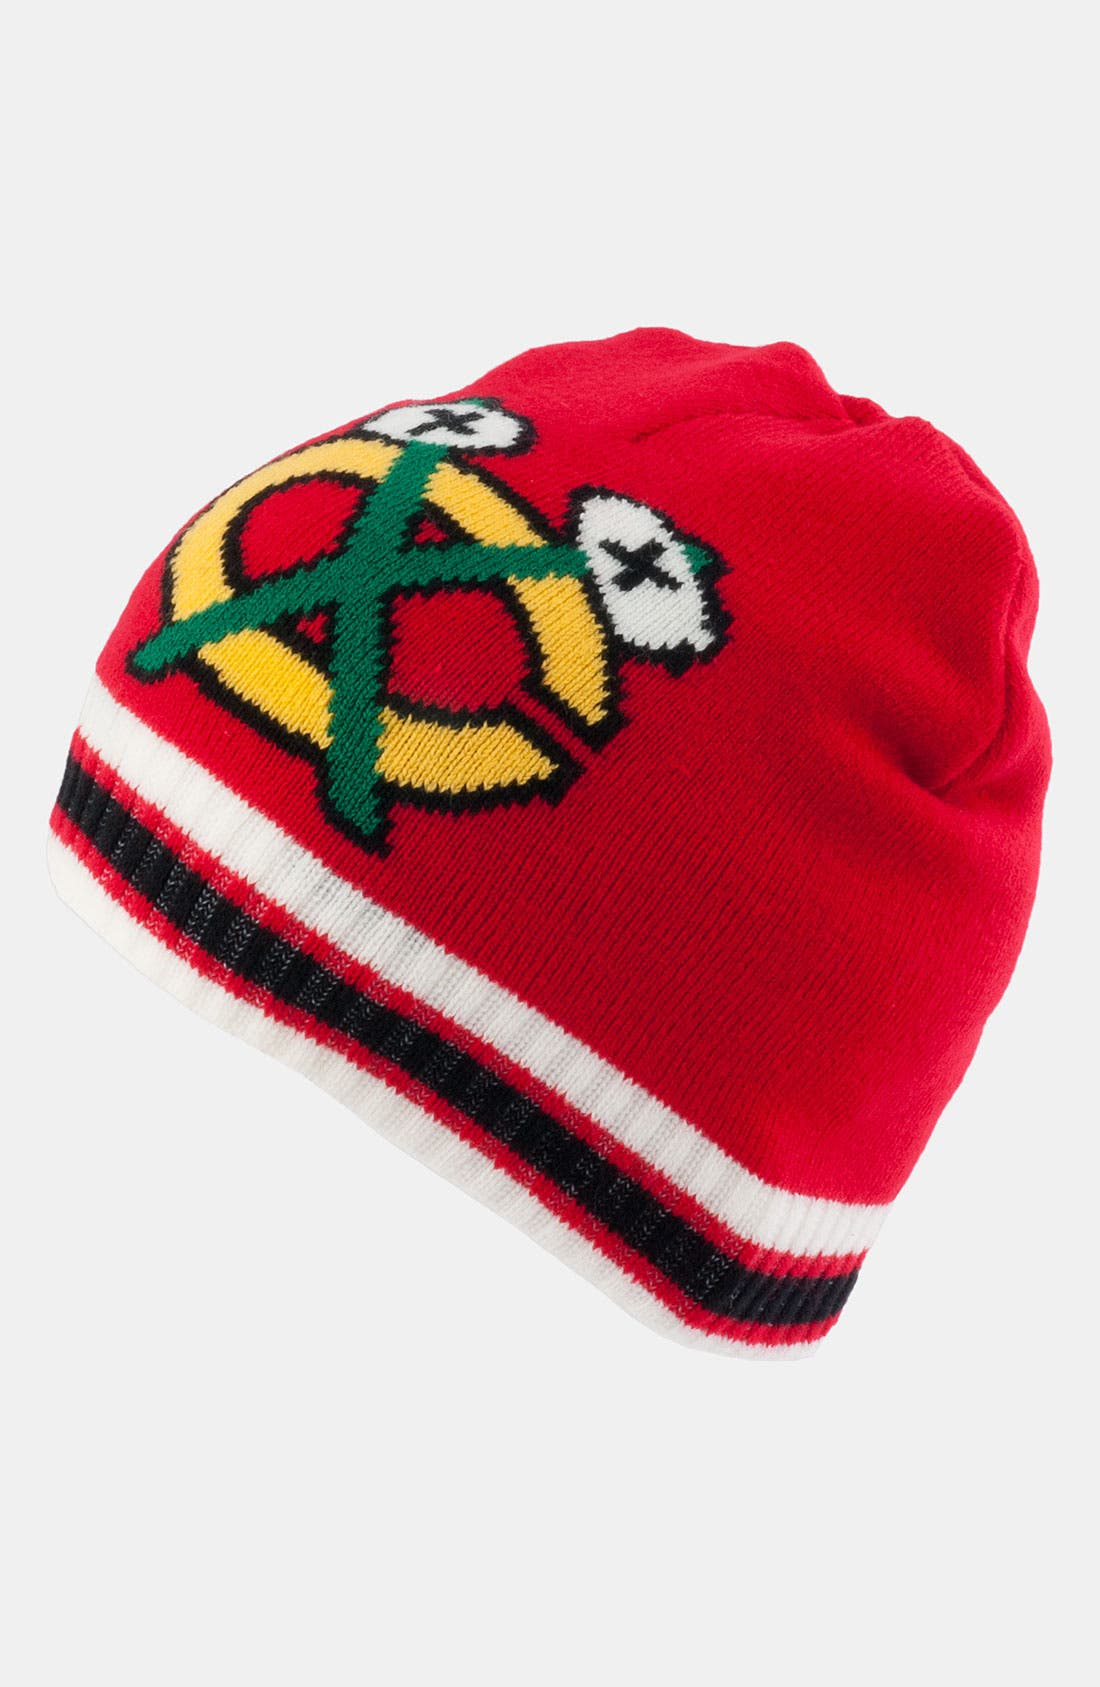 Main Image - American Needle 'Chicago Blackhawks - Right Wing' Knit Hat